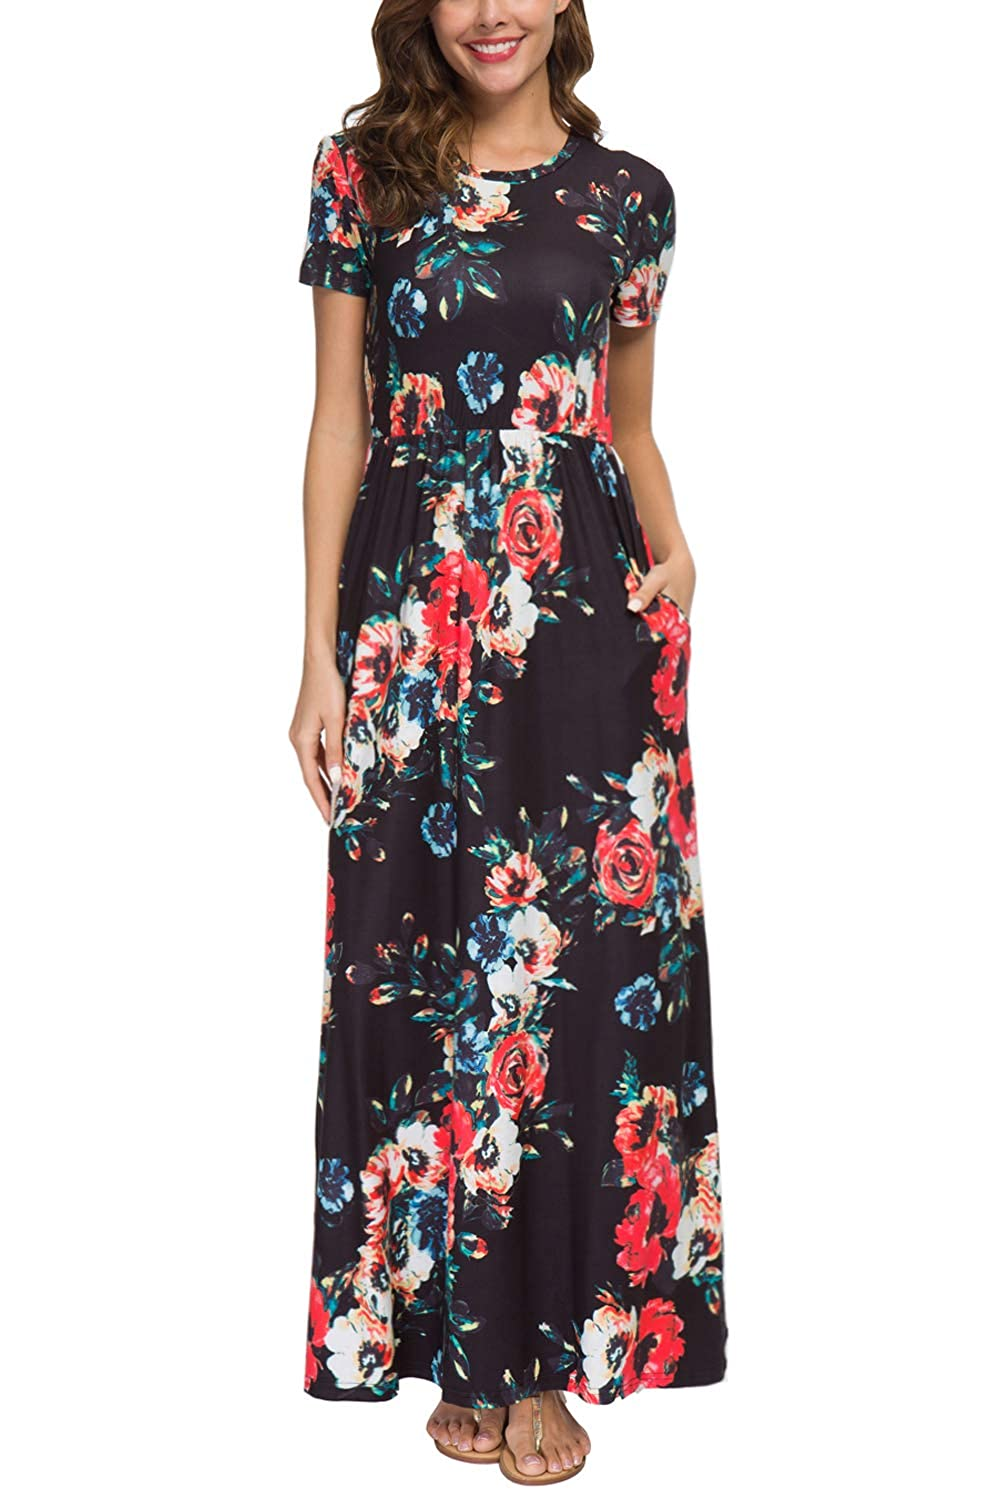 4e214483bfb6 Zattcas Womens Summer Casual Short Sleeve Long Floral Maxi Dress with Pockets  at Amazon Women s Clothing store